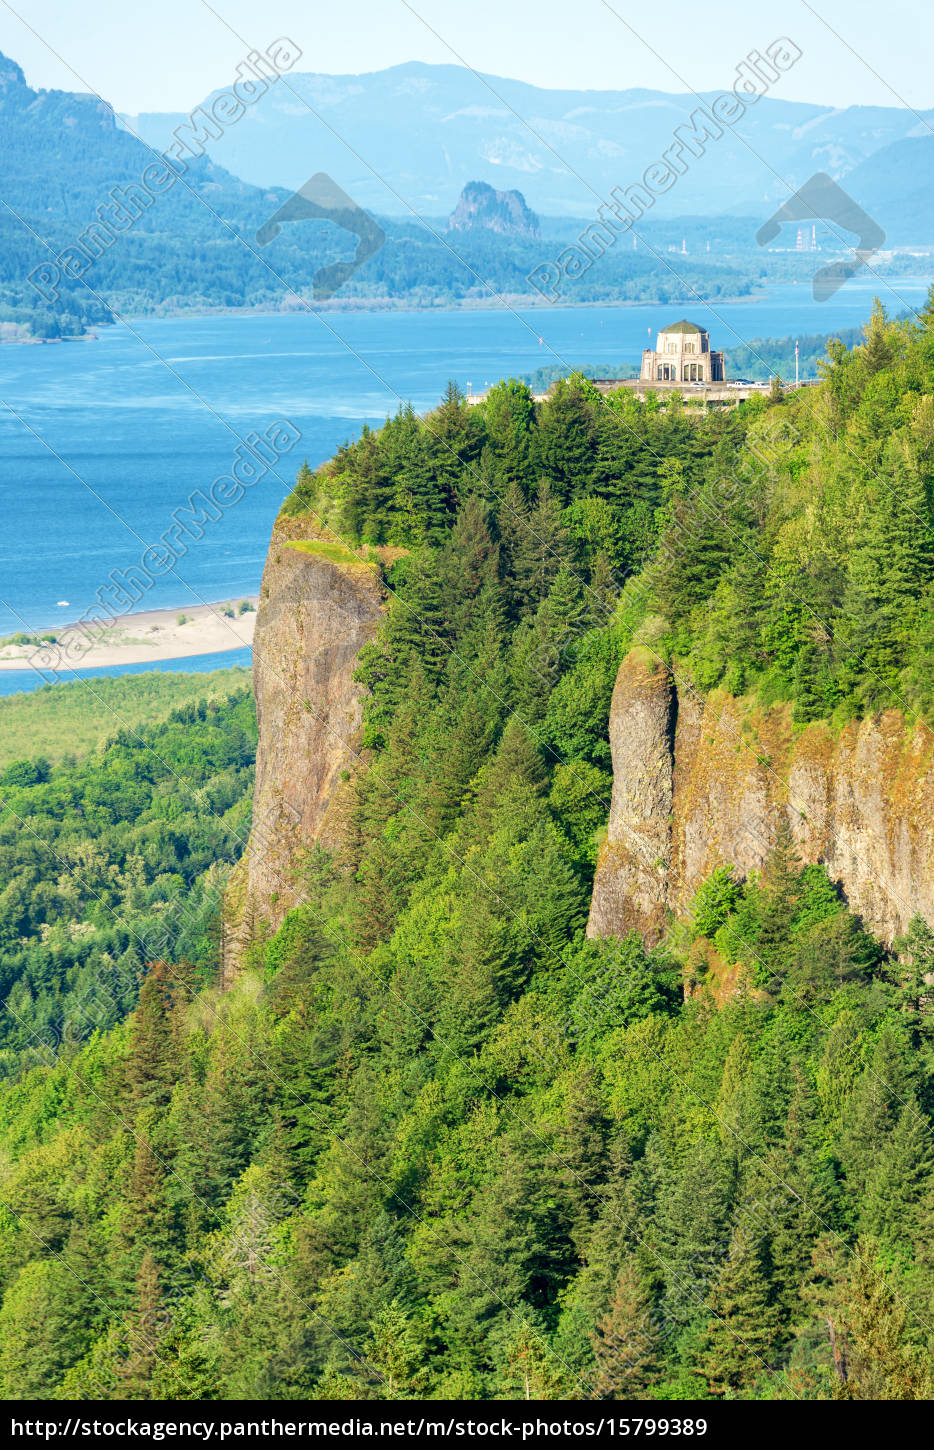 vista, house, and, columbia, river, gorge - 15799389